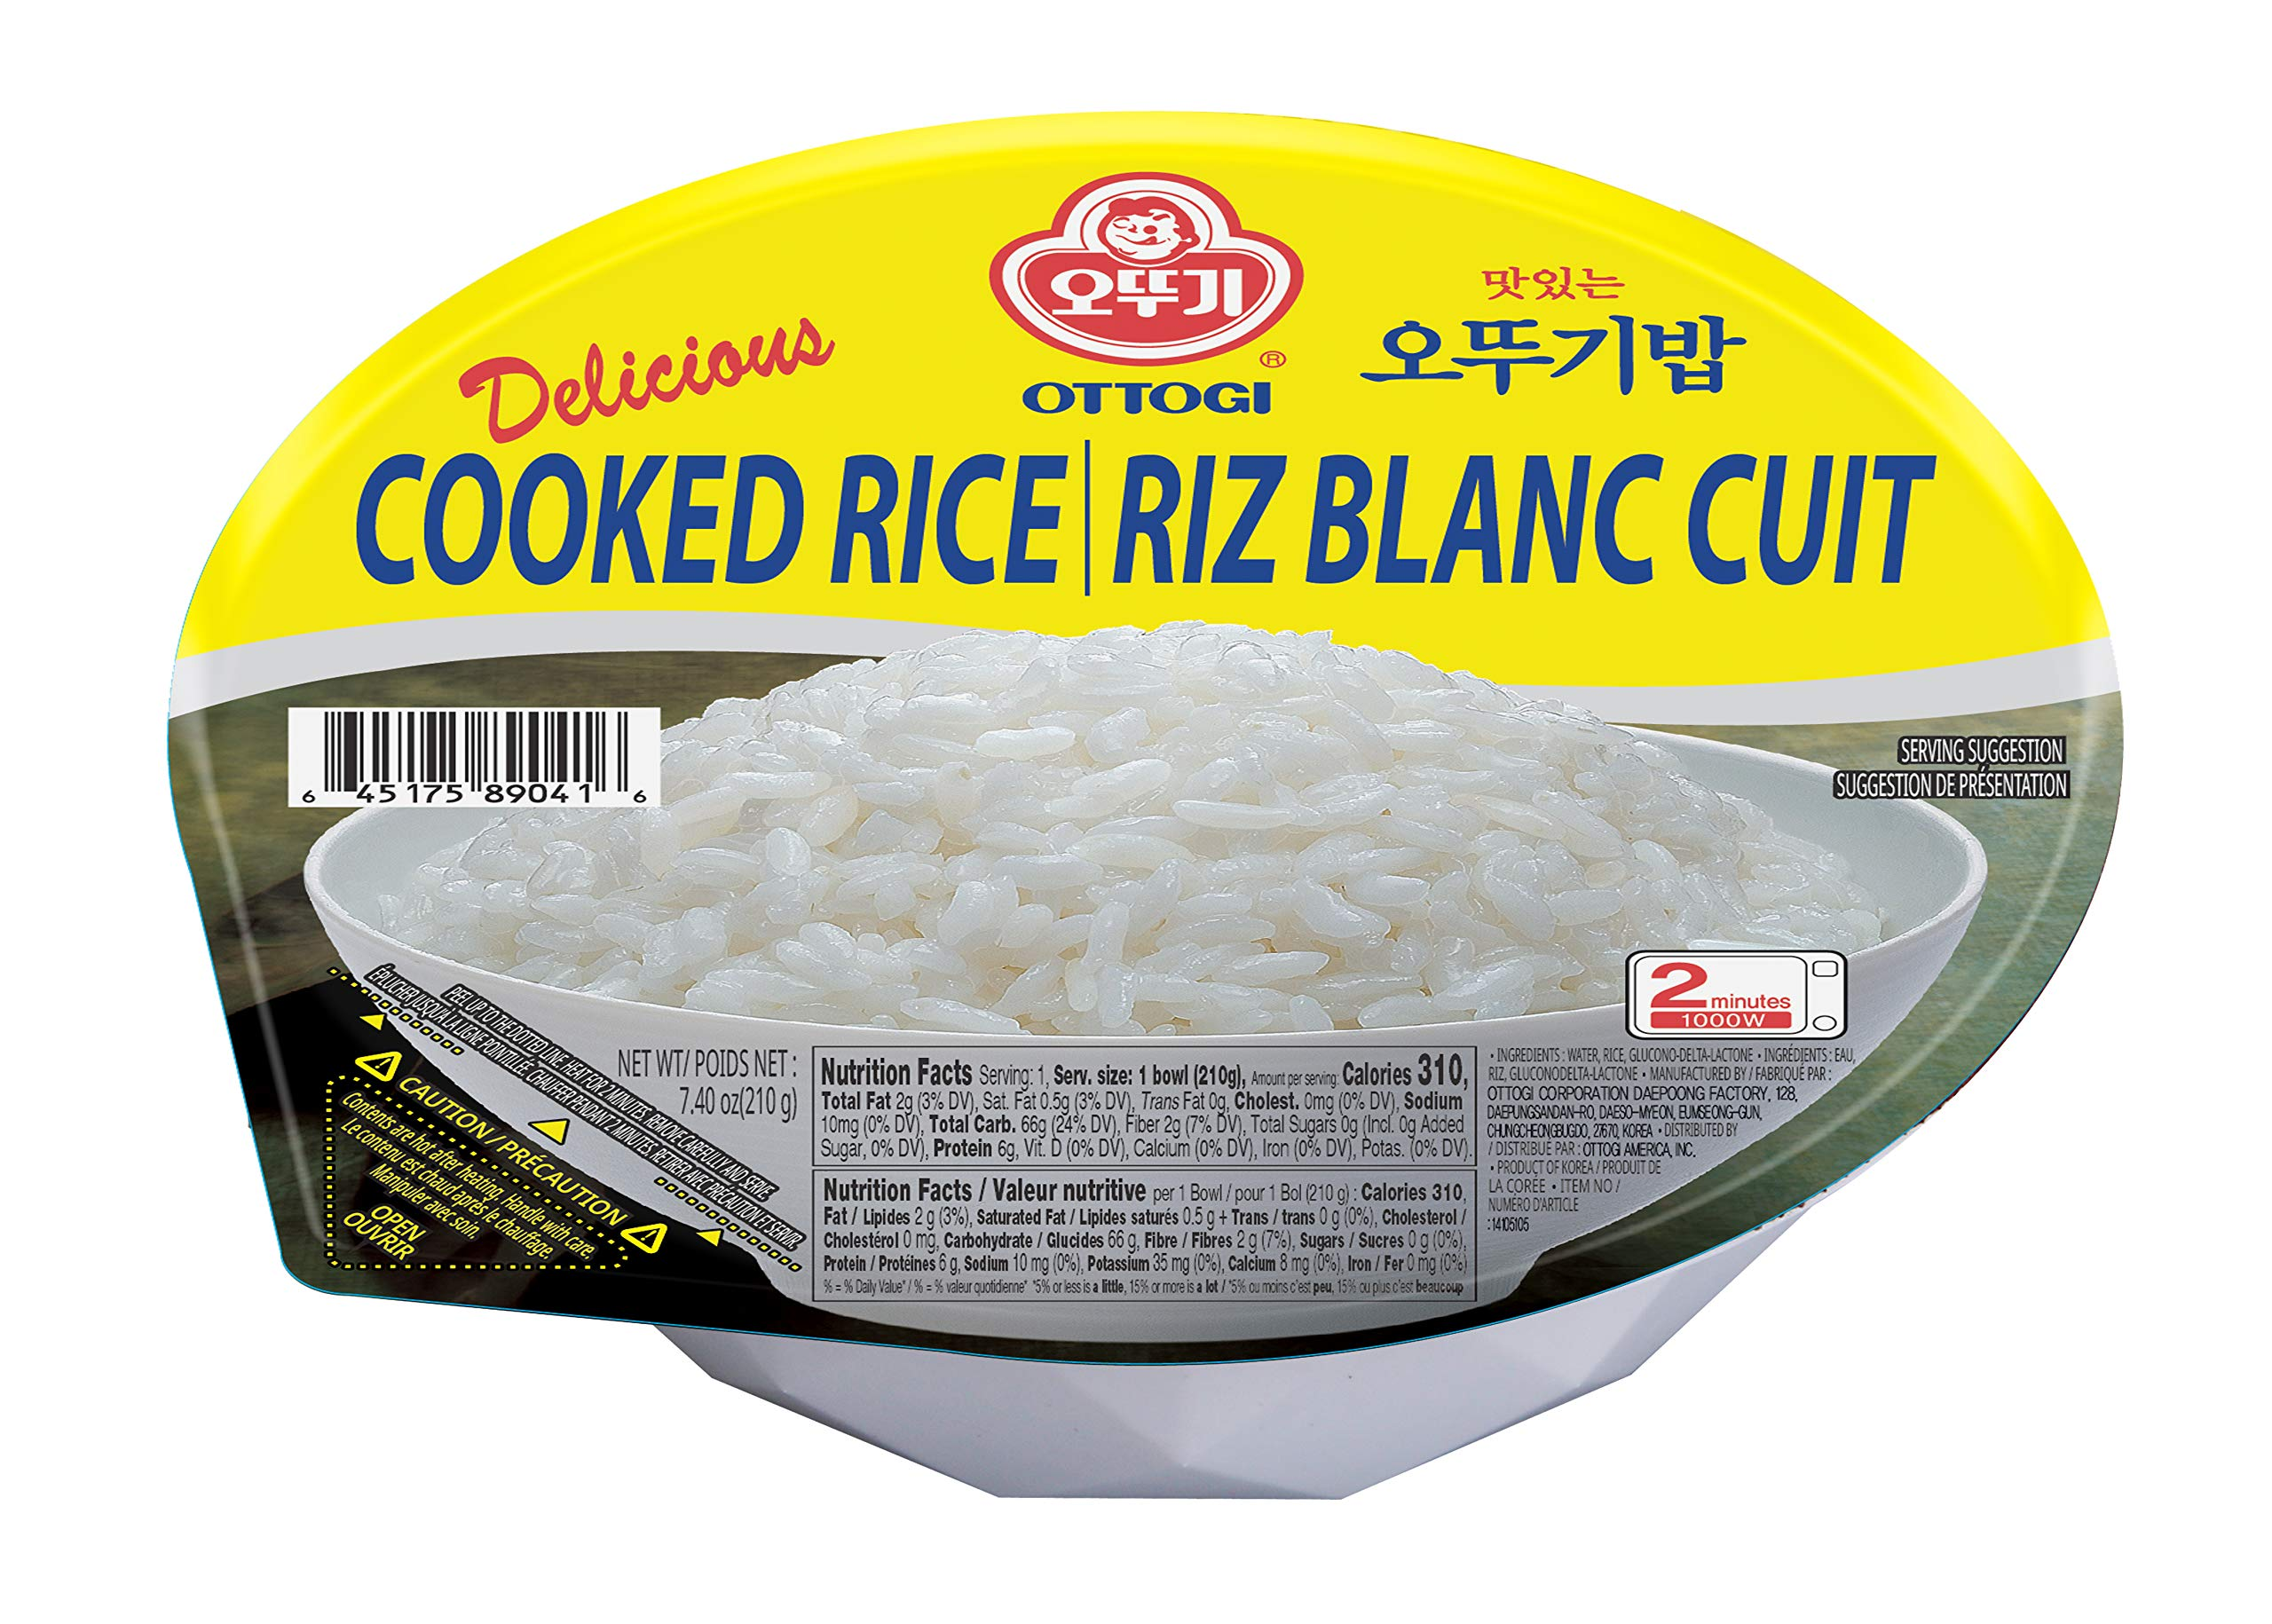 [OTTOGI] Delicious COOKED RICE, Gluten free, Microwavable instant cooked rice, Precooked ready to eat container (7.40oz., 12 count)